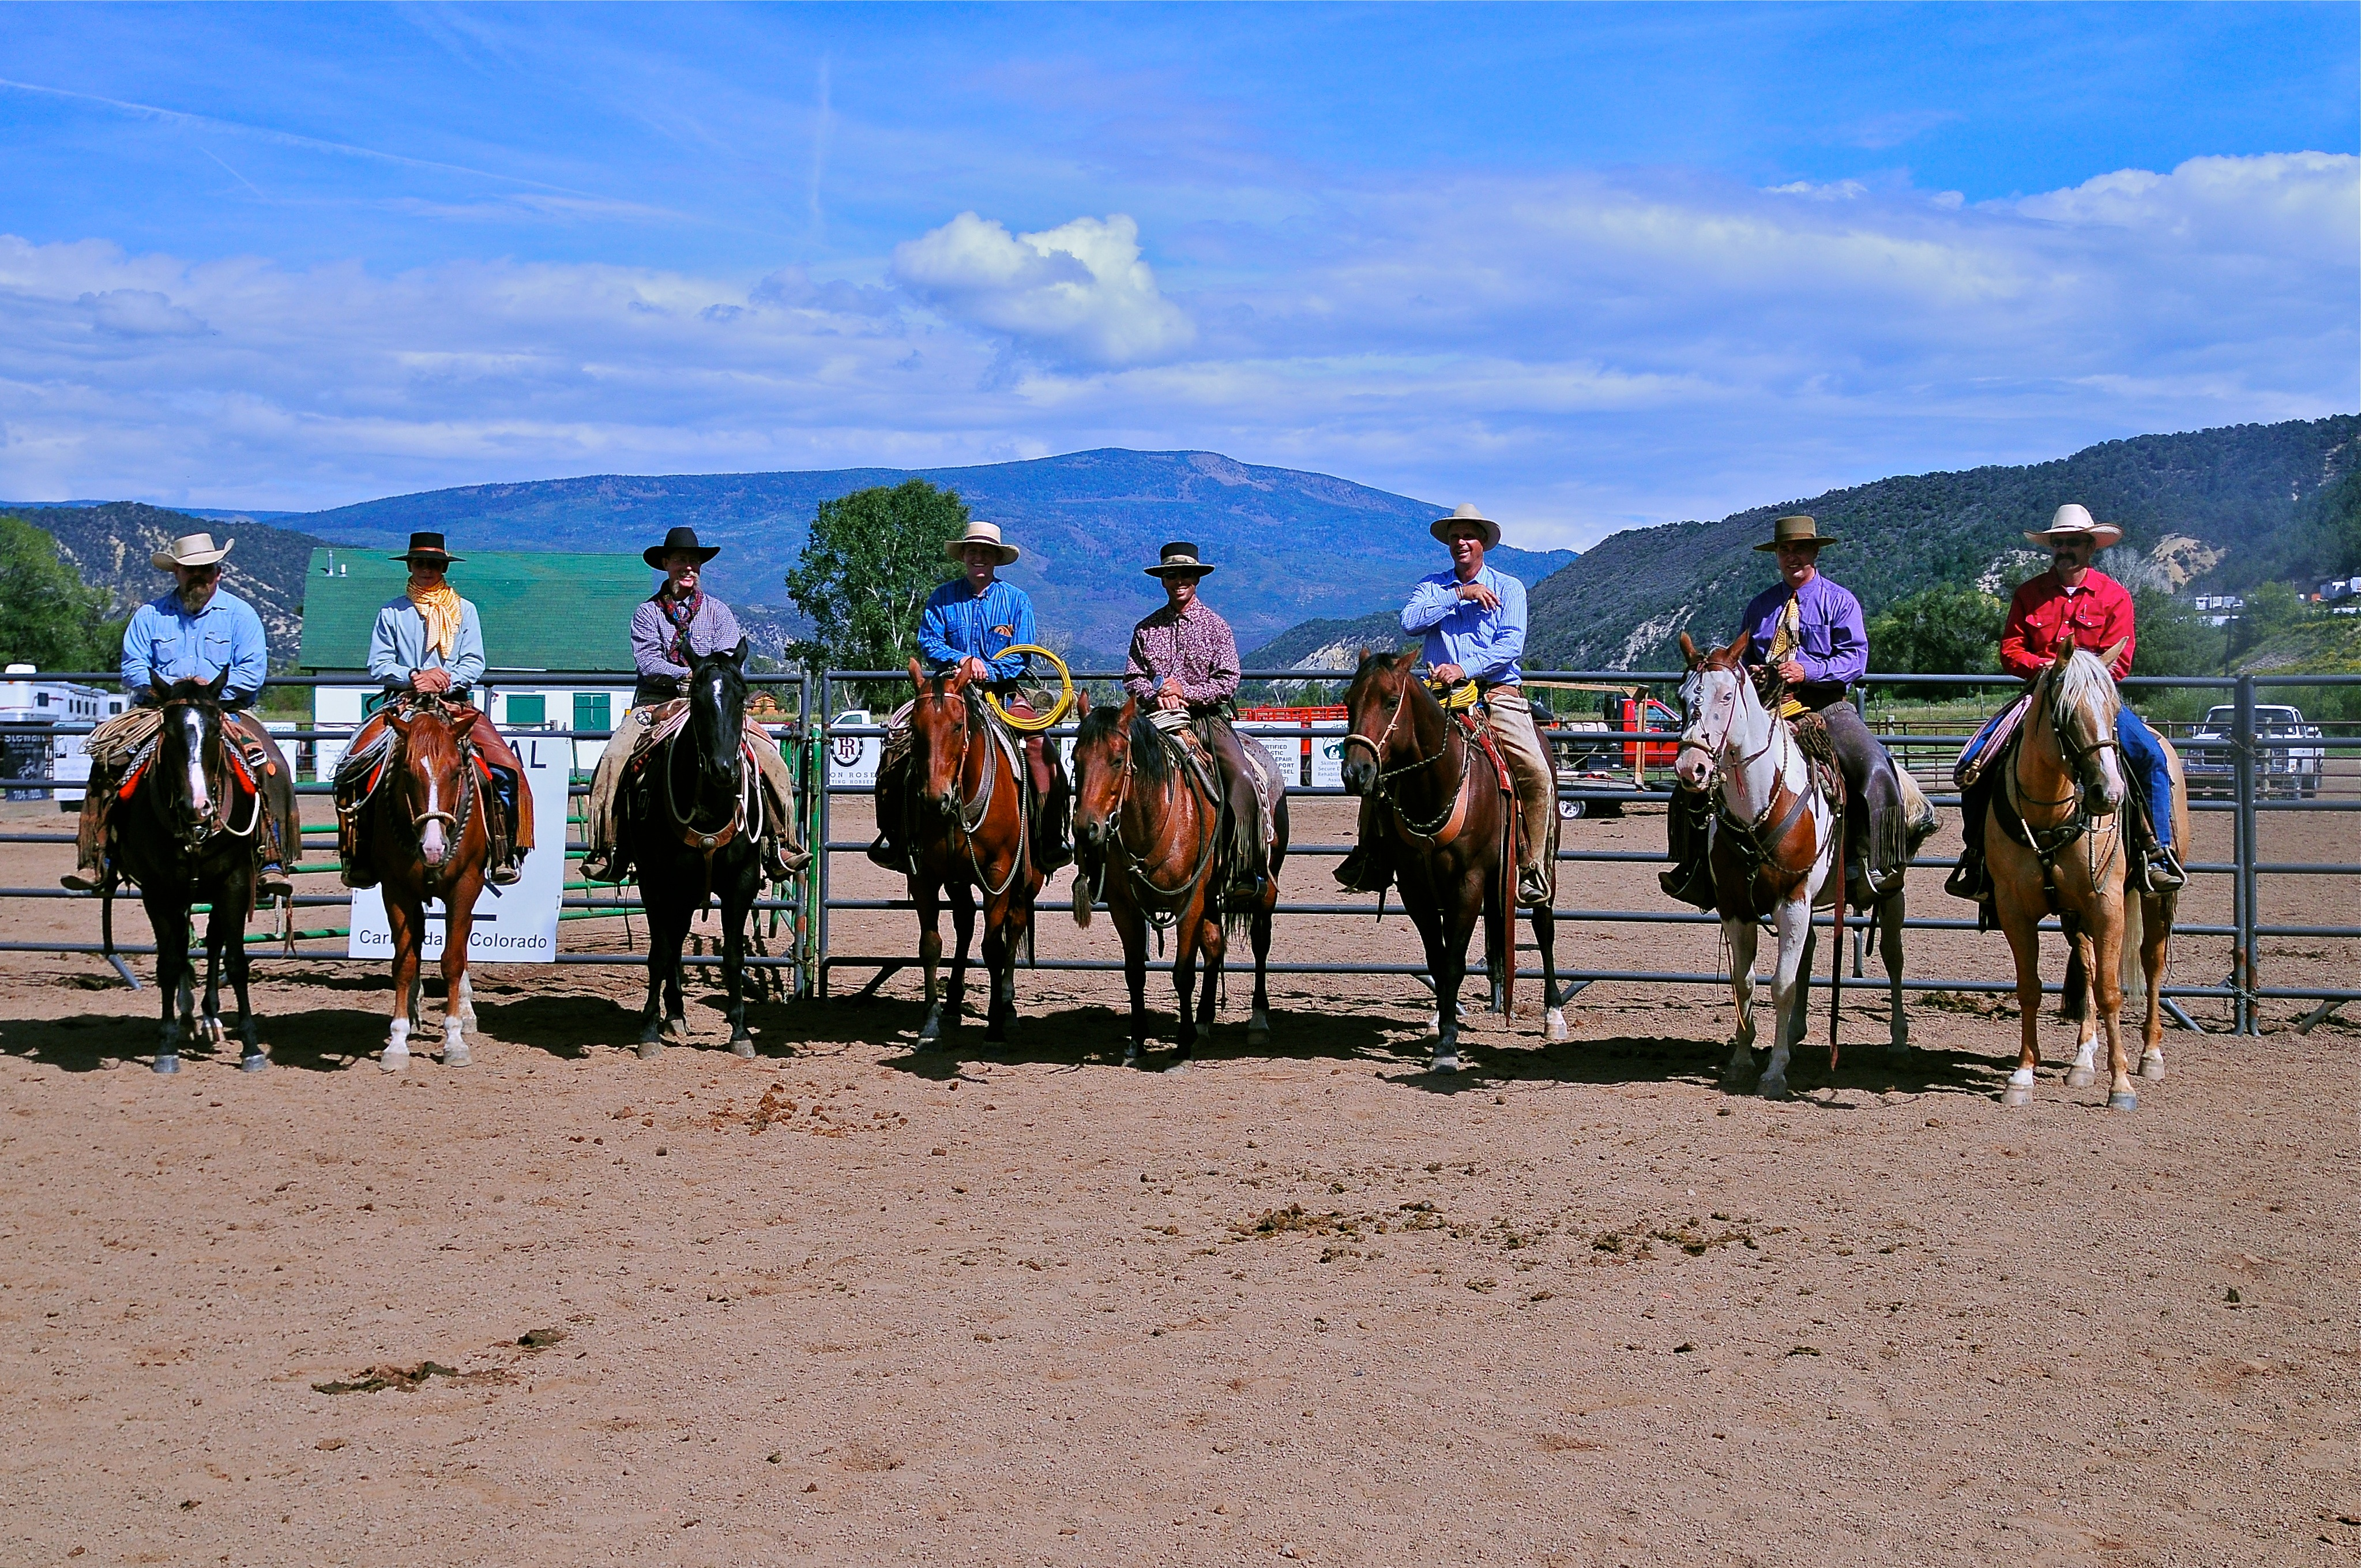 2011 Open Roping winners